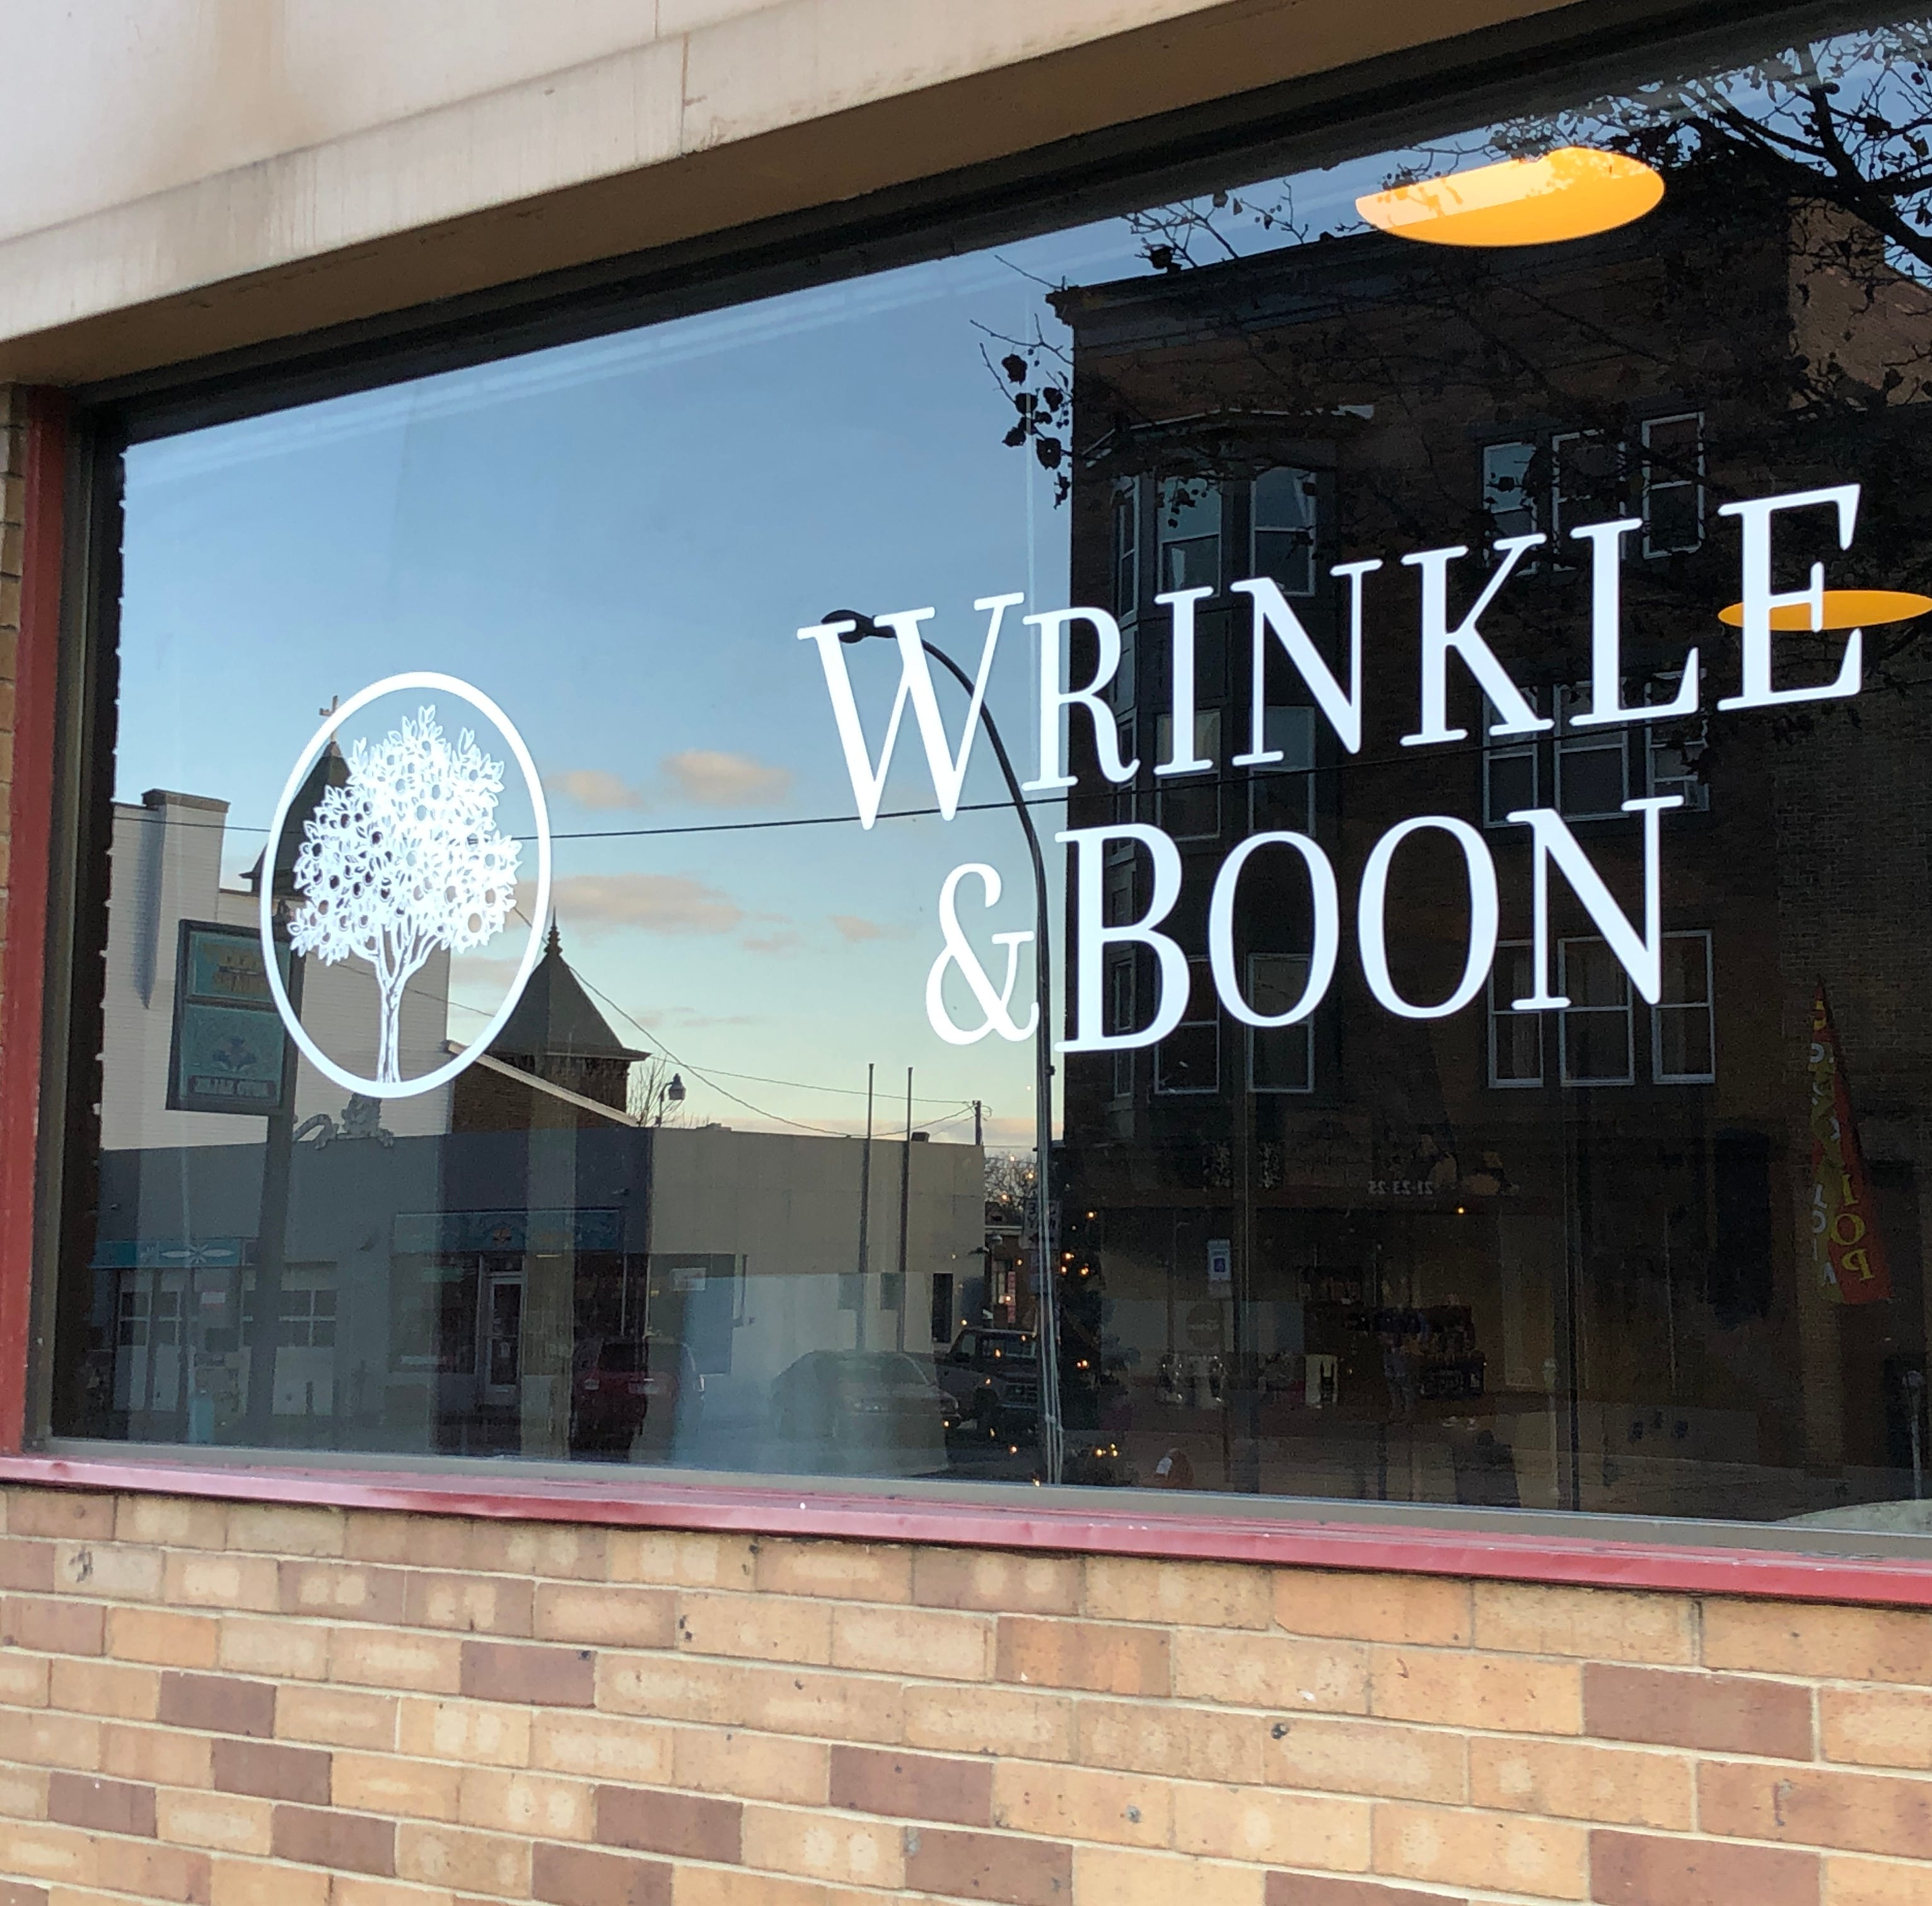 Case of the Mondays? Wrinkle & Boon has coffee, gifts